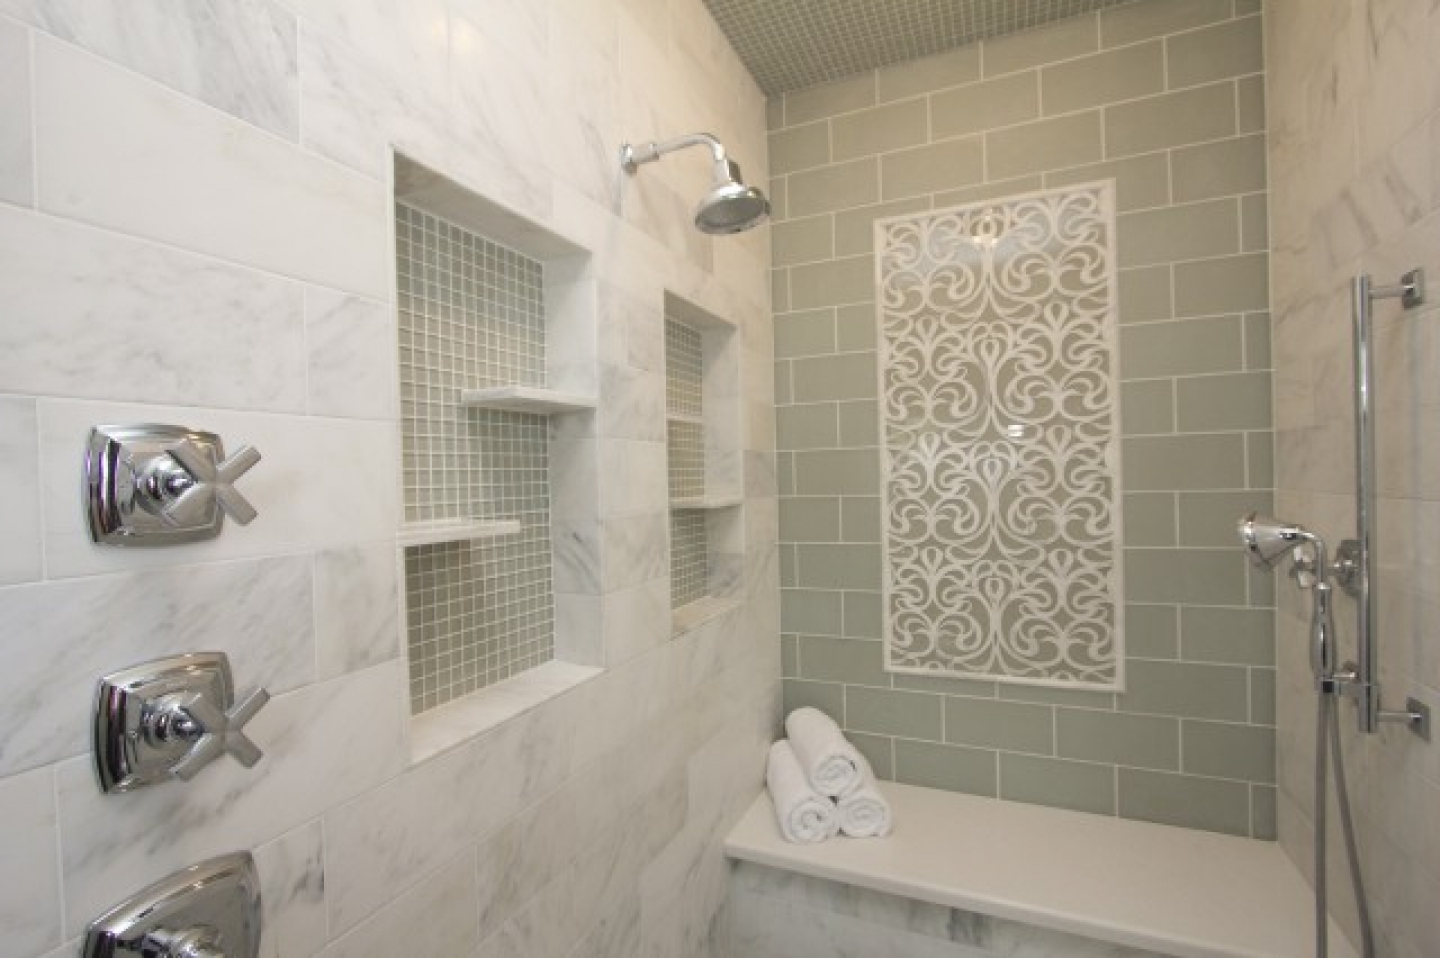 Bathroom Tile Ideas For Shower Walls glass bathroom tiles ideas. zamp.co